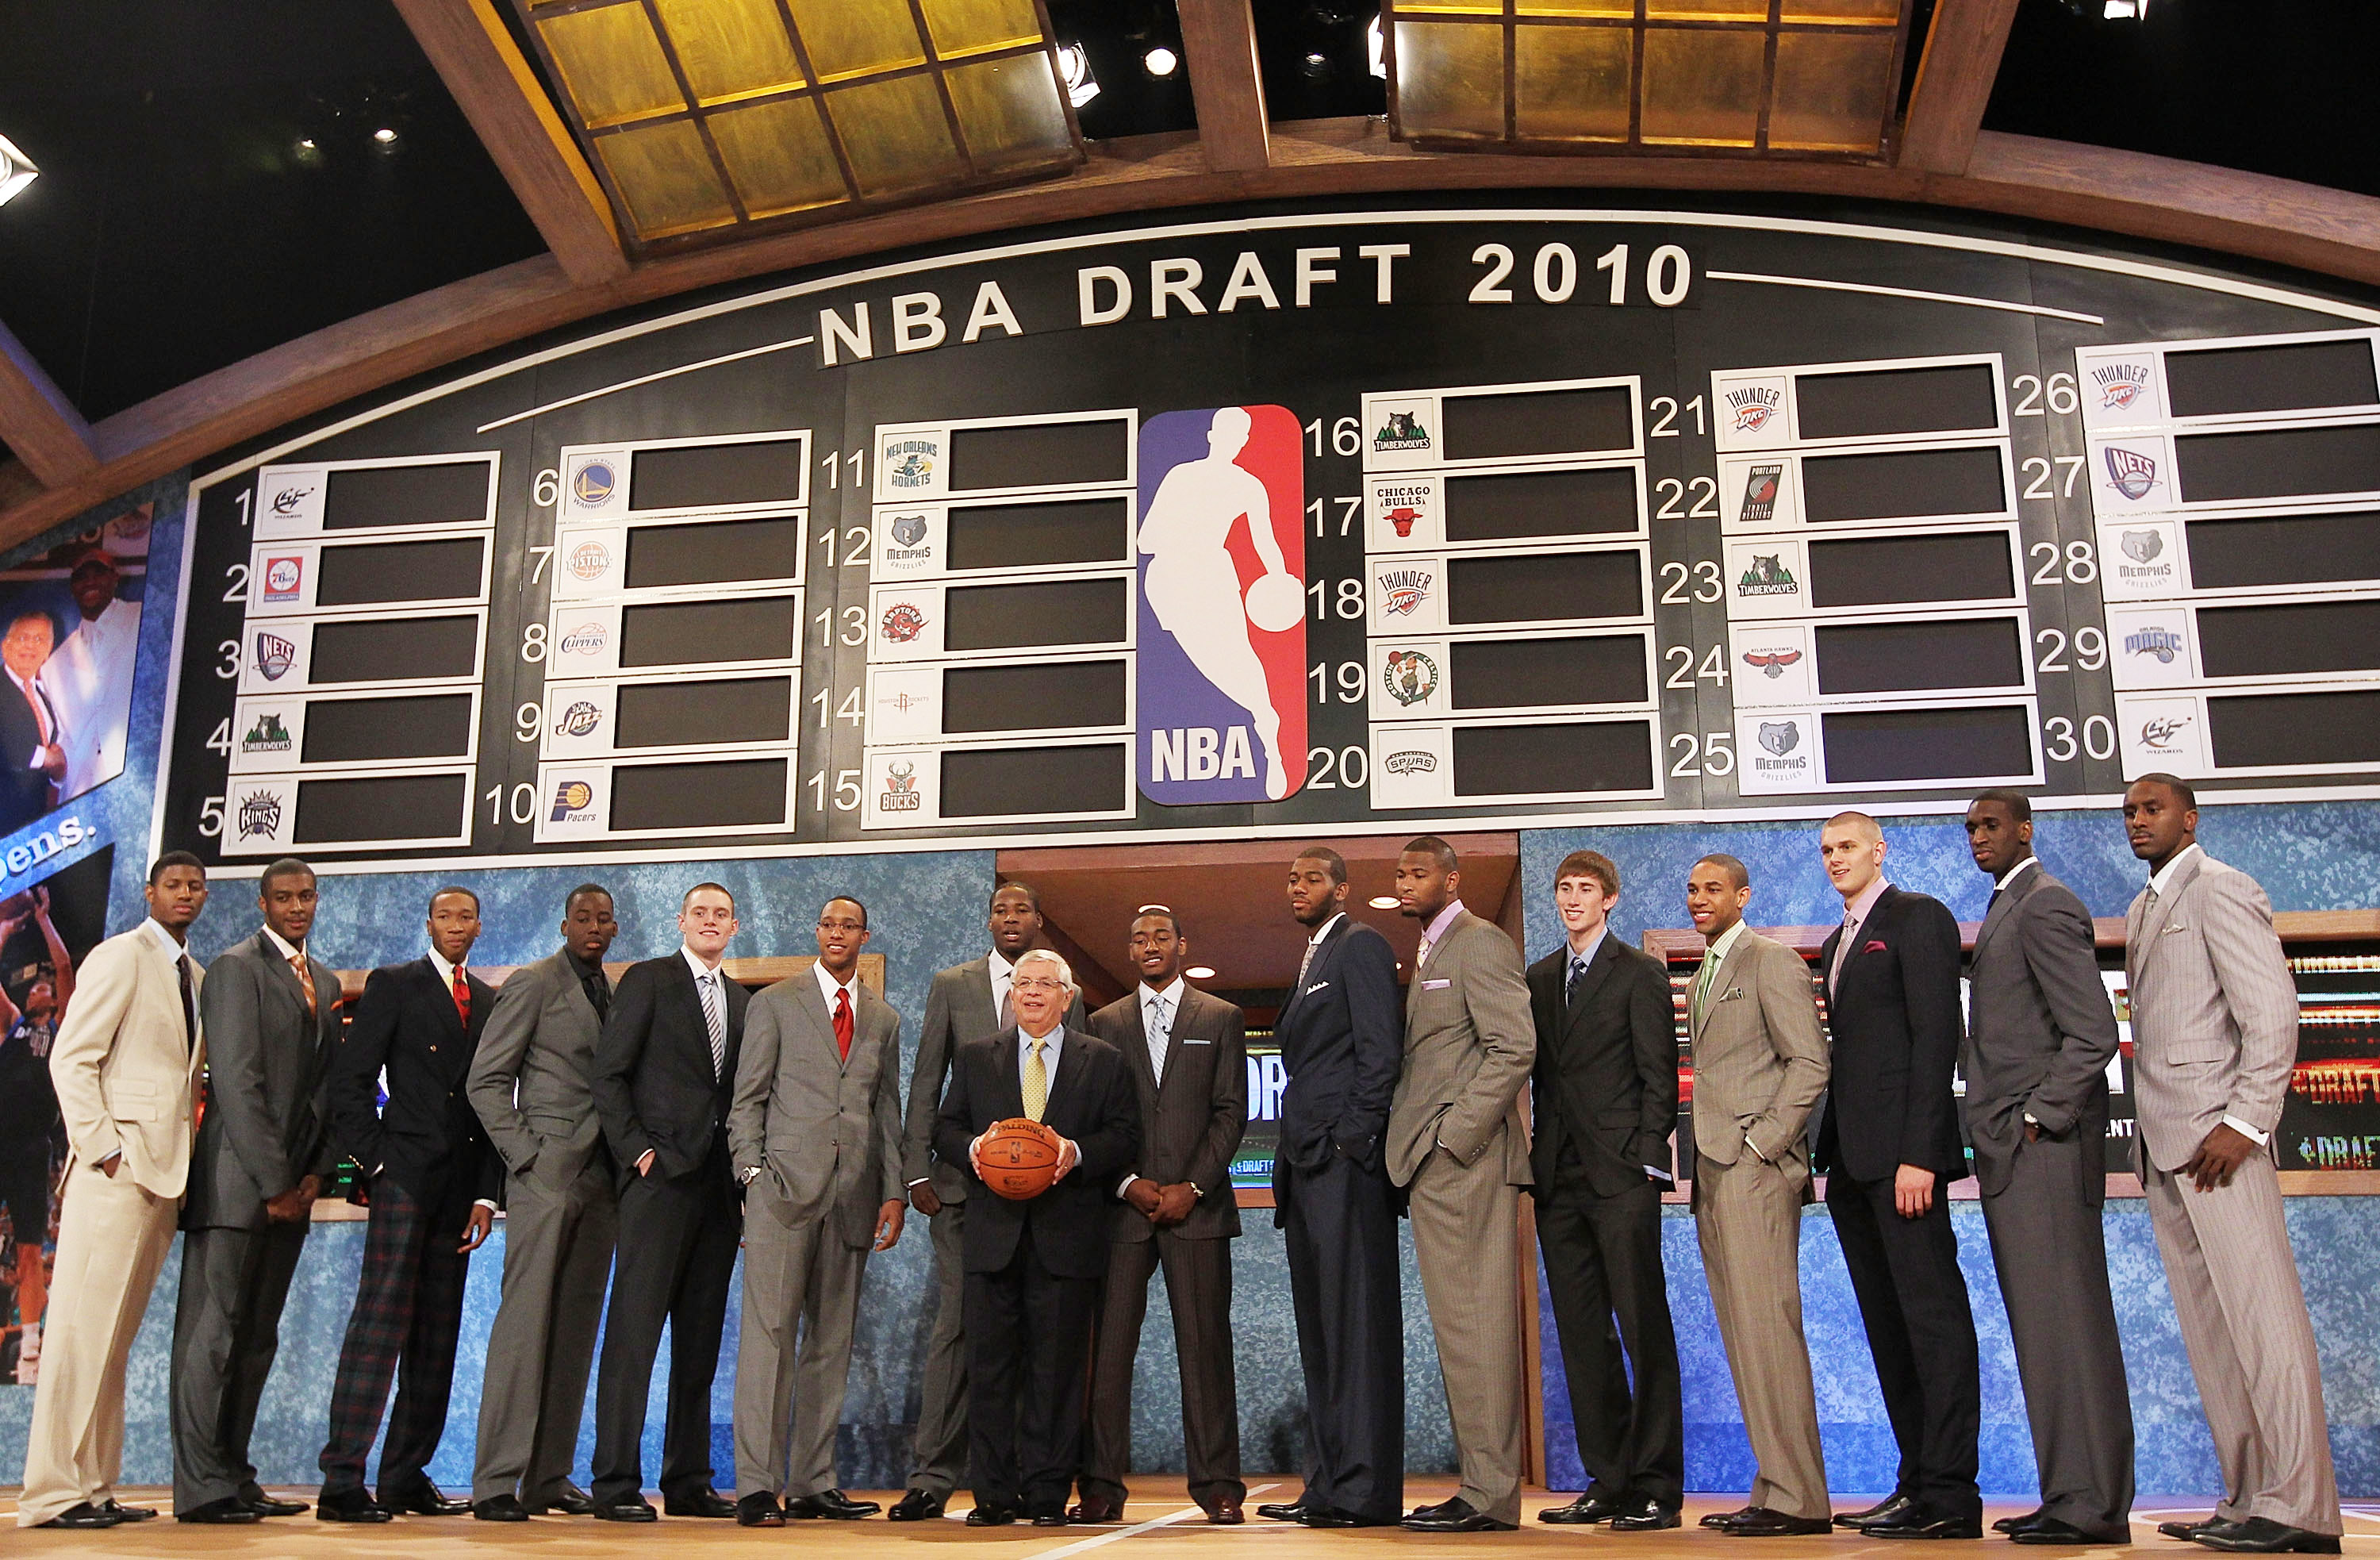 The 2010 lottery produced many exciting stars of tomorrow. What does the 2011 lottery have to offer?